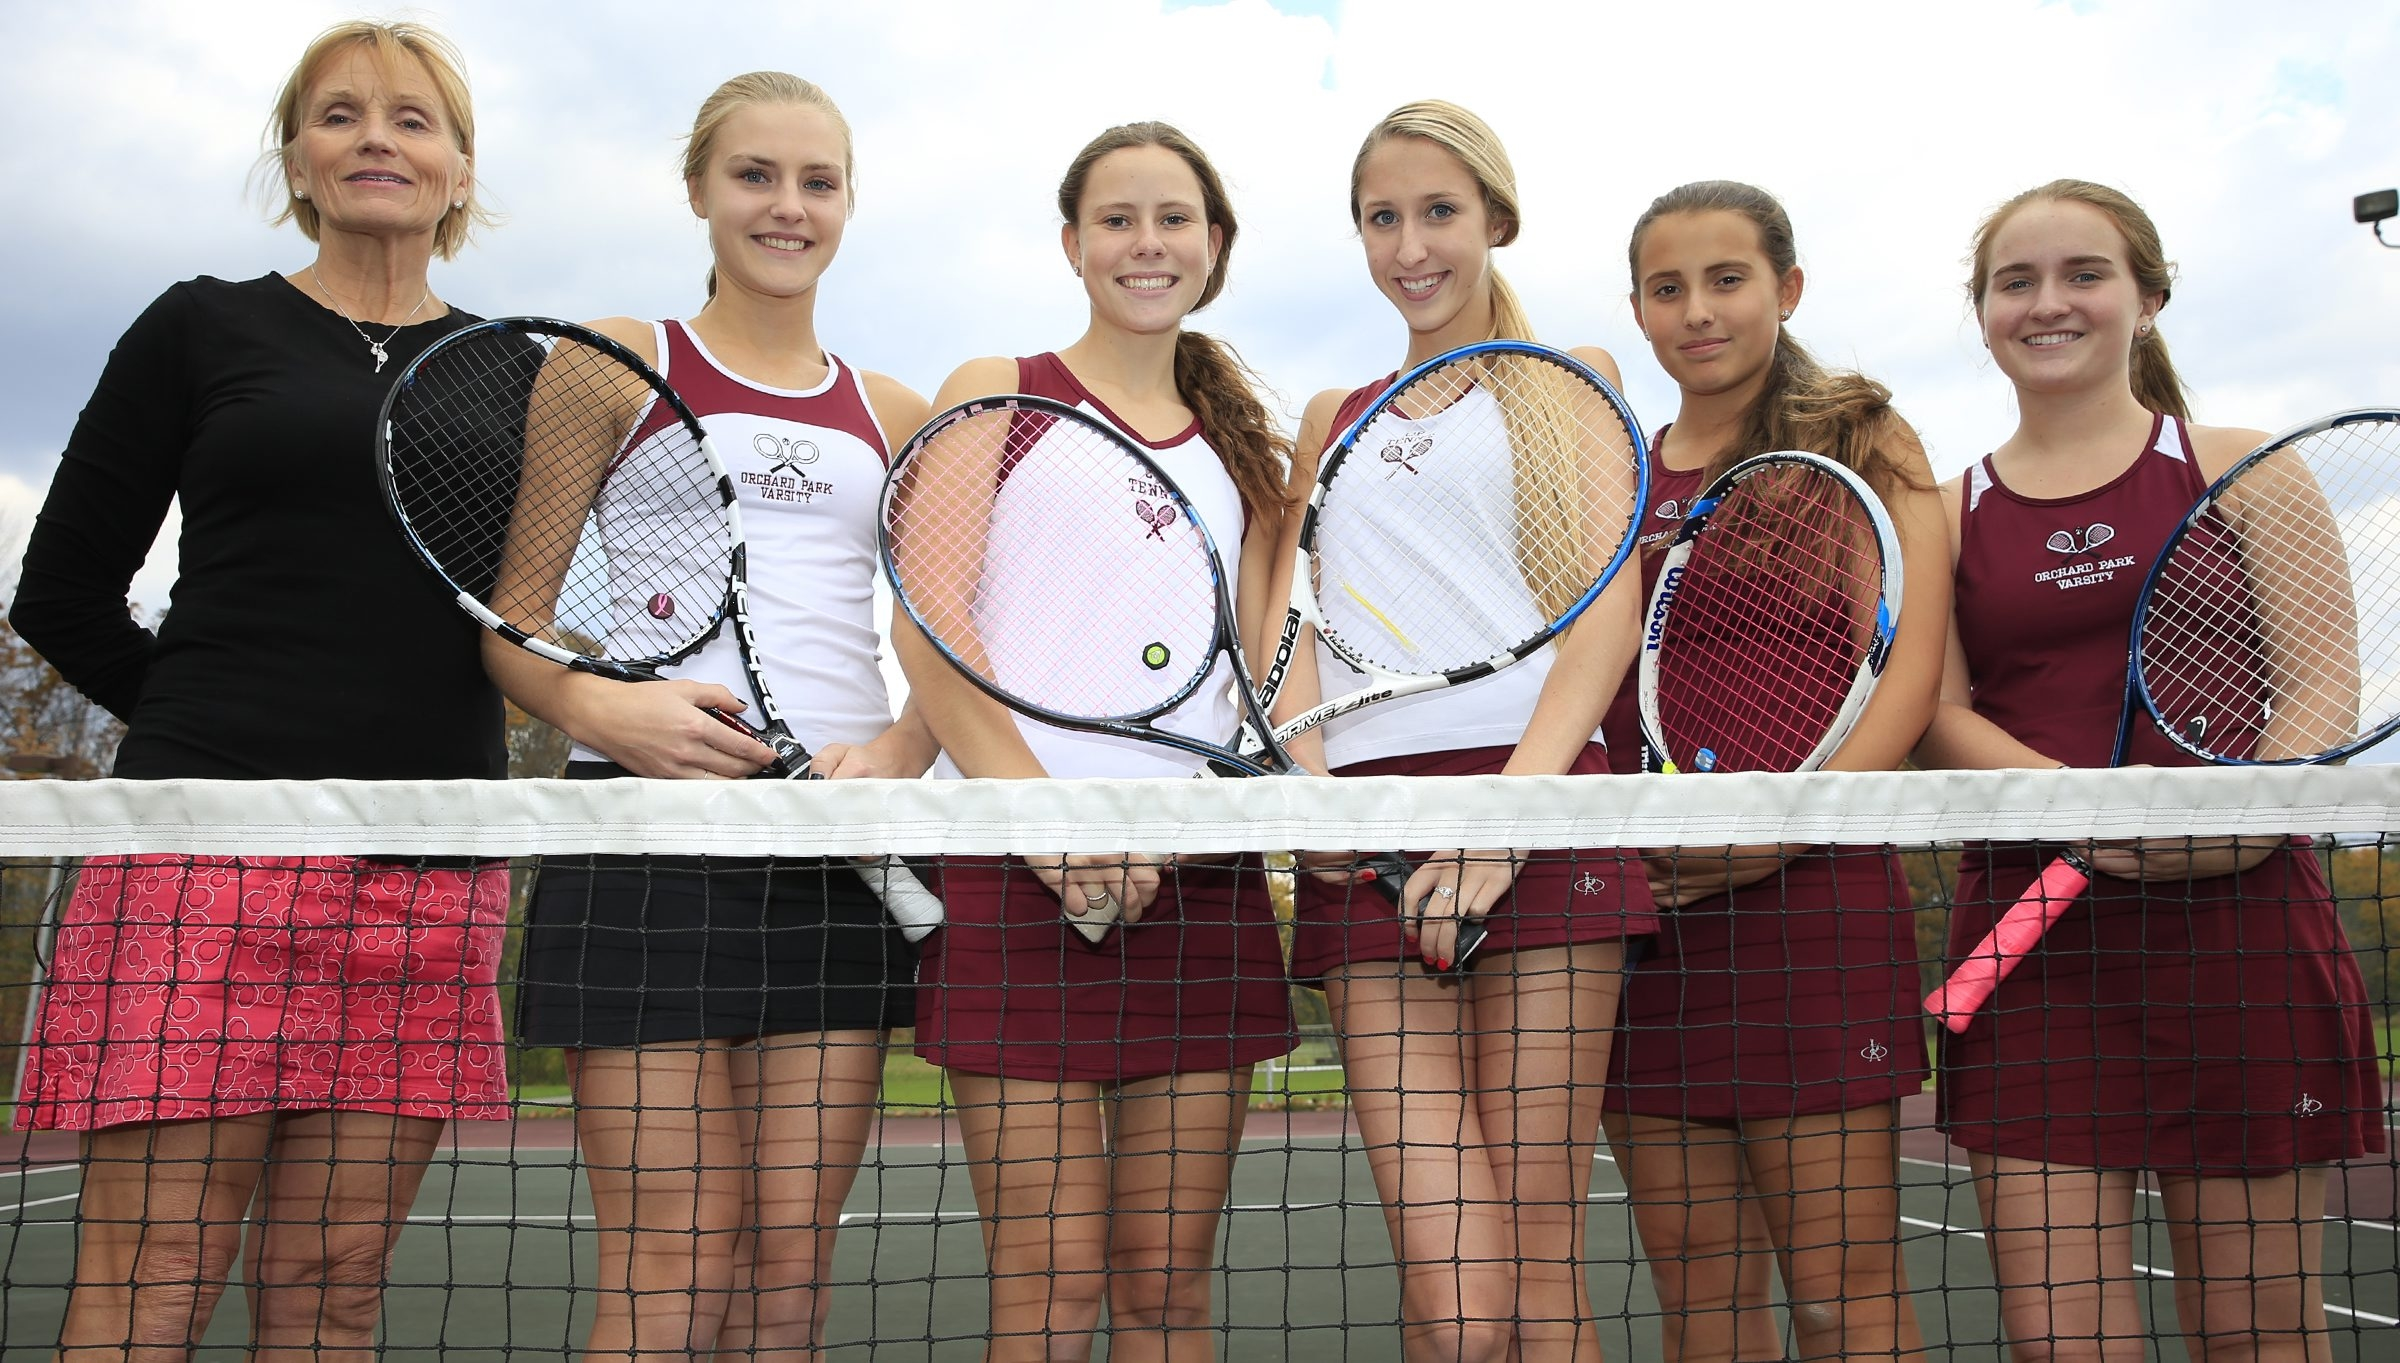 From left, Orchard Park tennis coach Sandy Trampert with the five members of her team going to the state championships: Haley Hollins, Rachel Johnson, Shayleen Brennan, Lauren Karoglan and Kristen Zablonski.